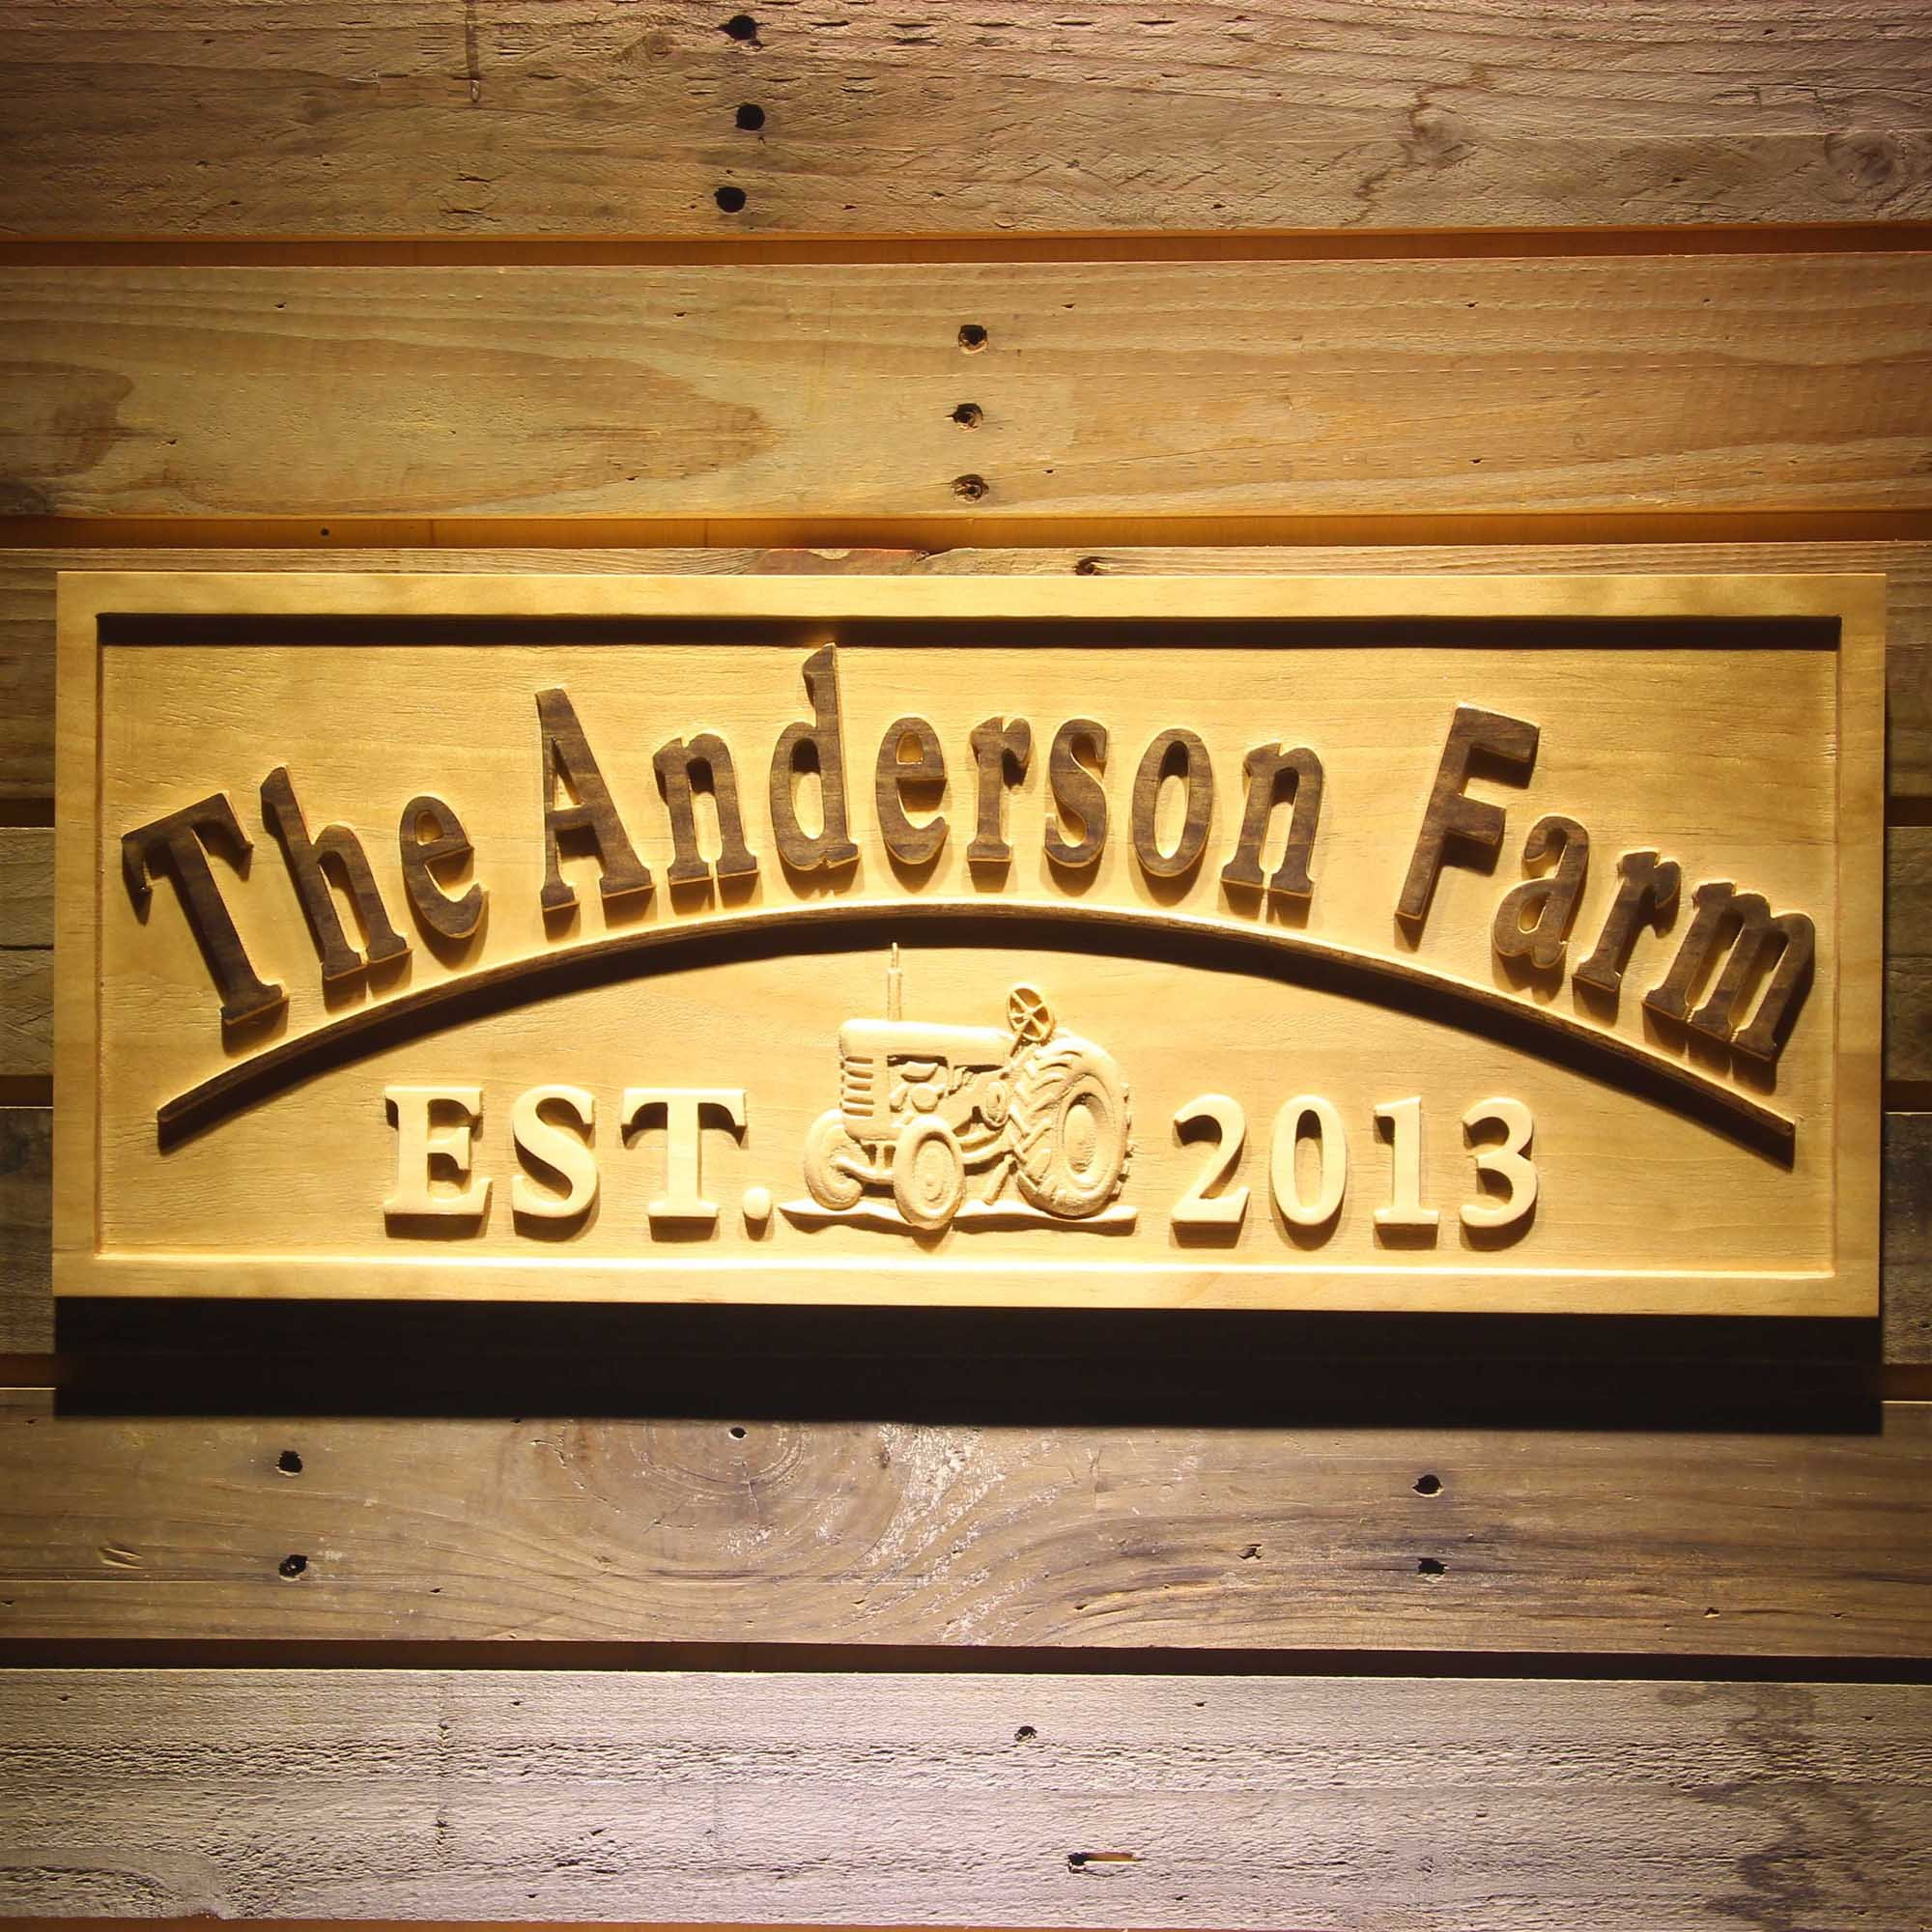 ADVPRO wpa0306 Name Personalized Farm with Tractor Home Decoration Housewarming Gifts Wood Engraved Wooden Sign - Standard 23'' x 9.25''